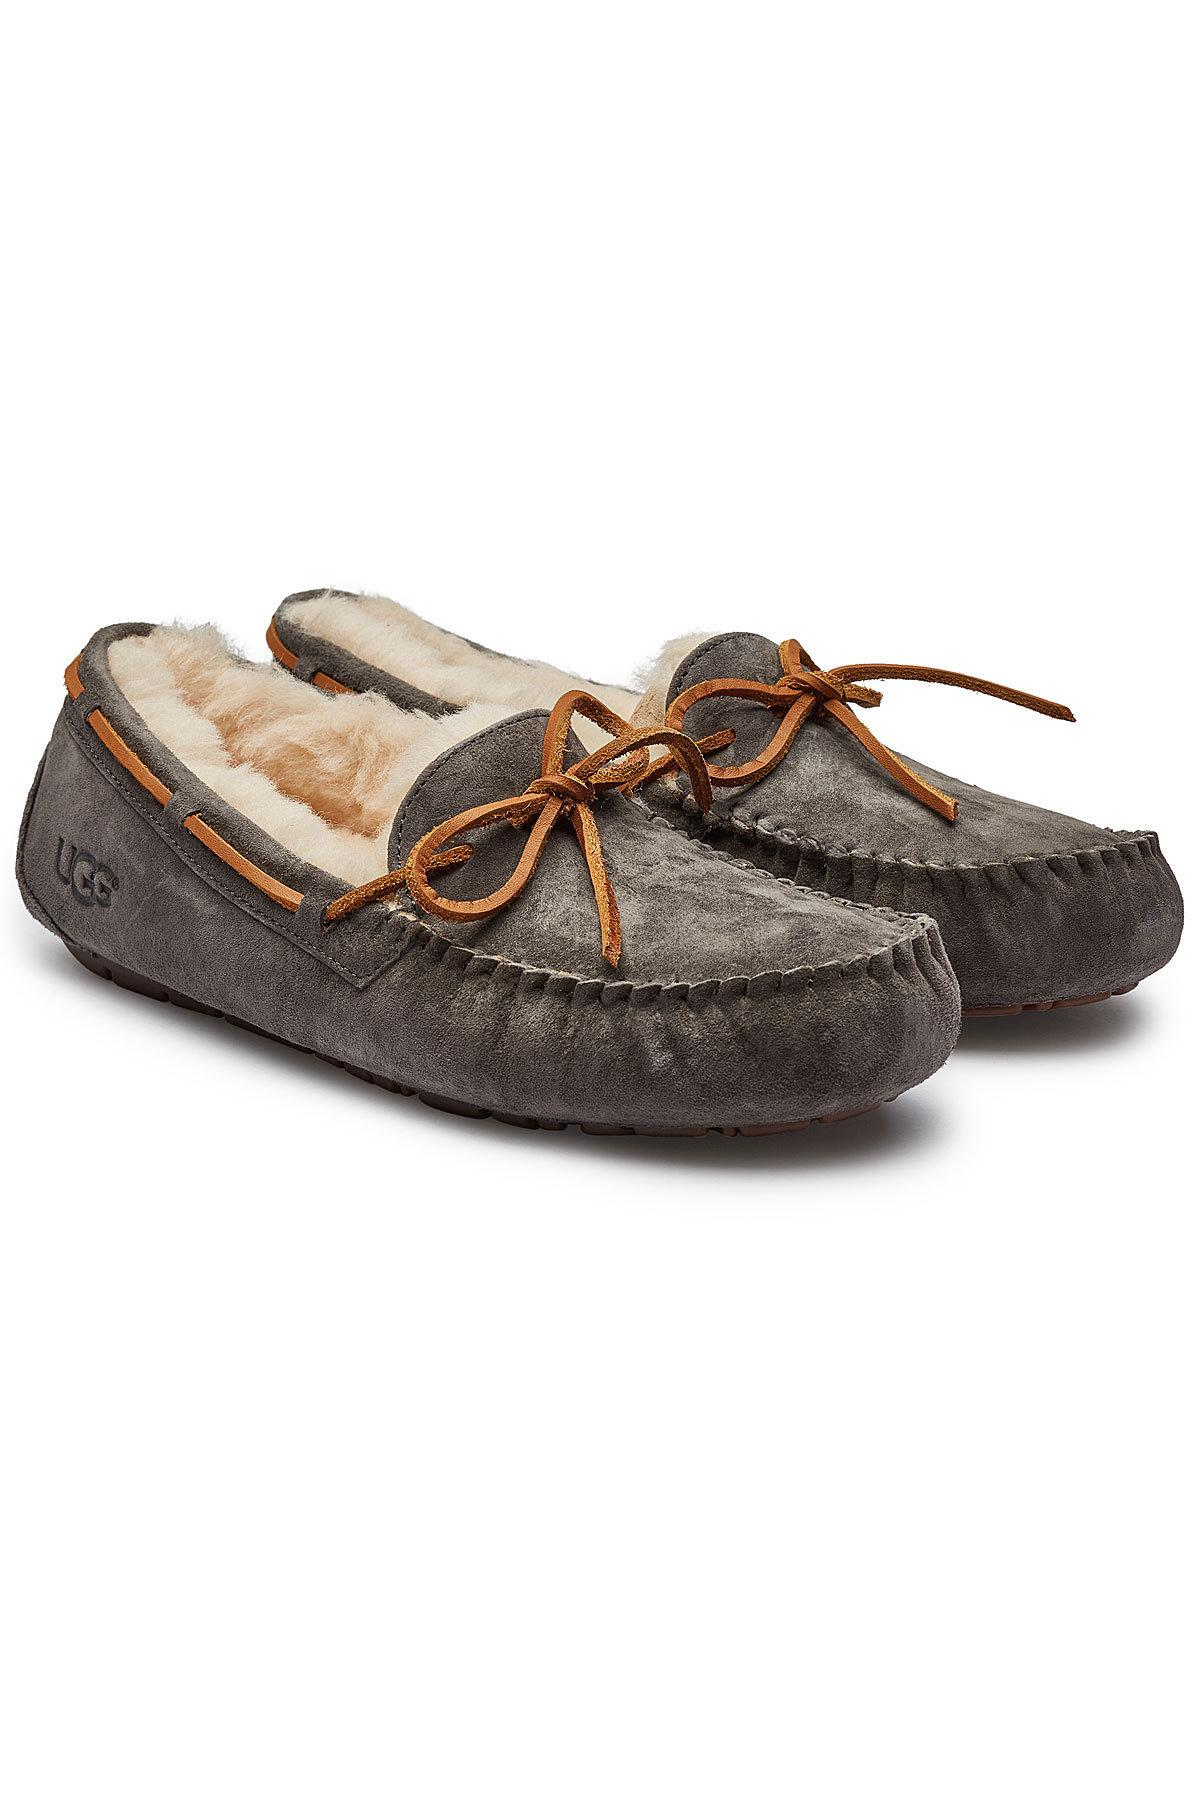 1bf1c9afe7b Women's Gray Dakota Suede Slippers With Shearling Insole